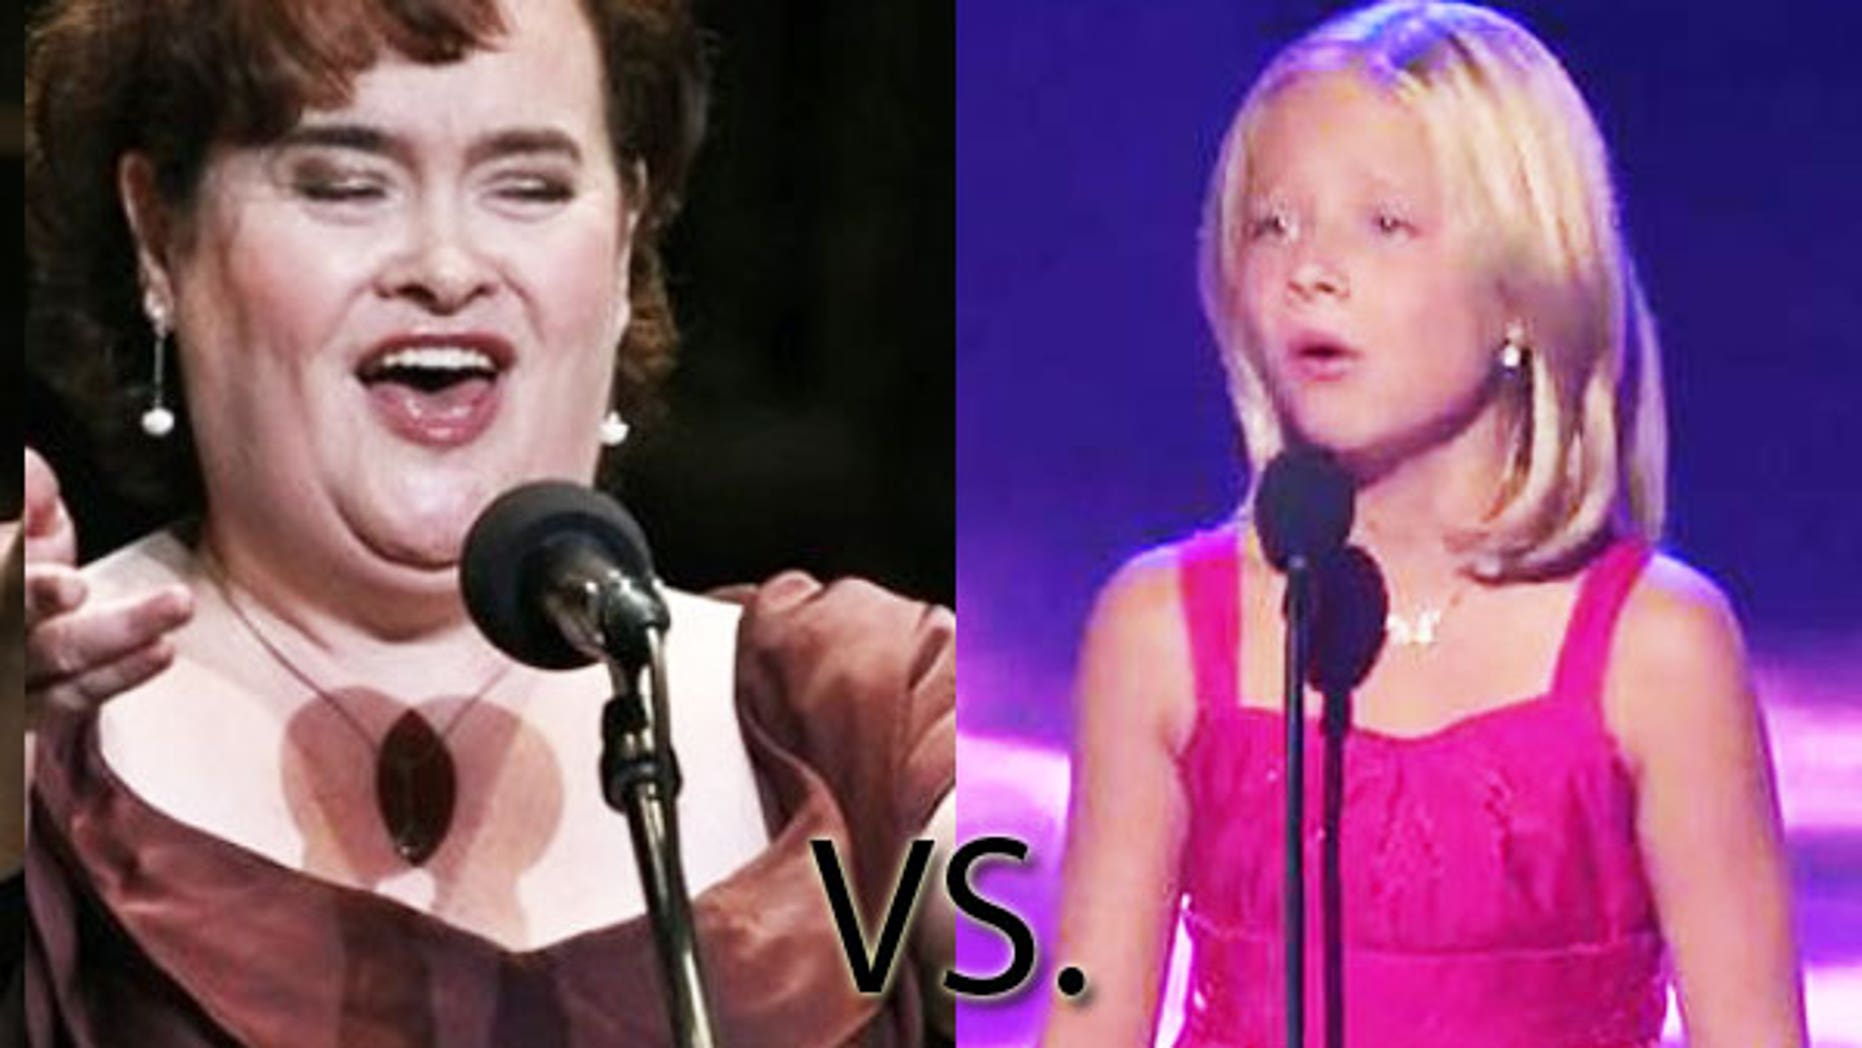 Which unlikely singing sensation is your favorite, Susan Boyle (left) or Jackie Evancho?